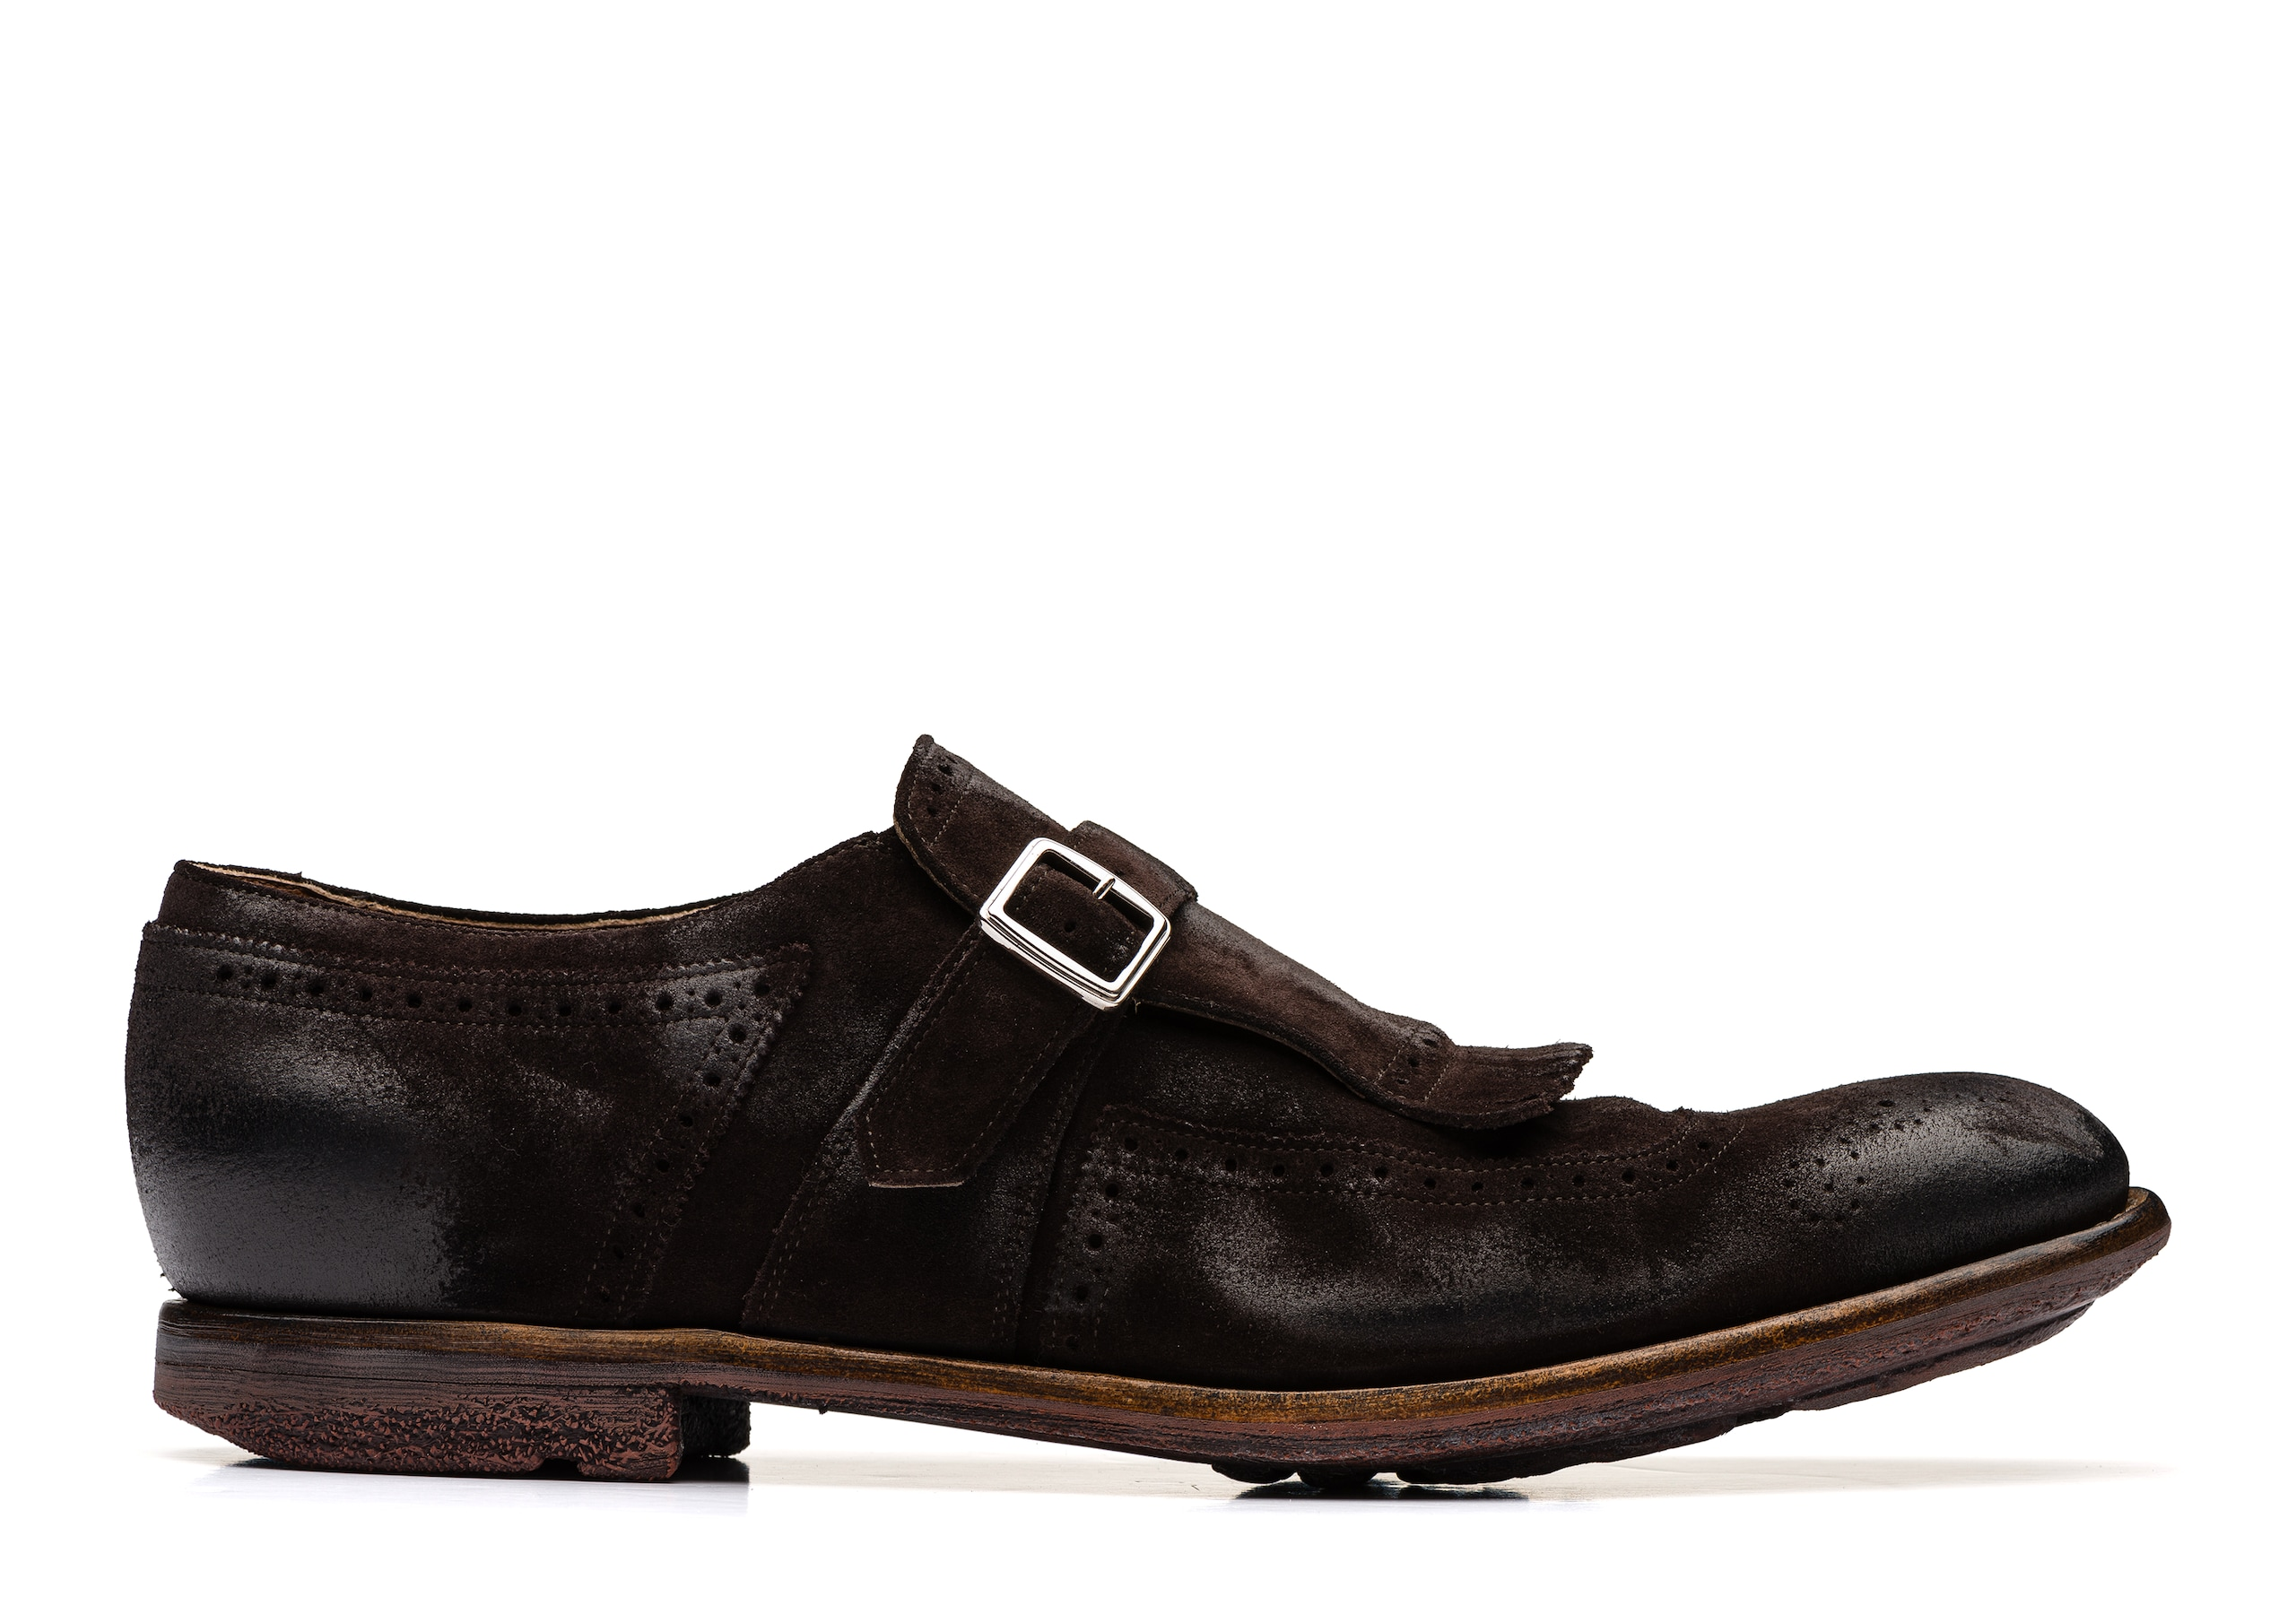 Shanghai Church's Vintage Suede Buckle Loafer Brown